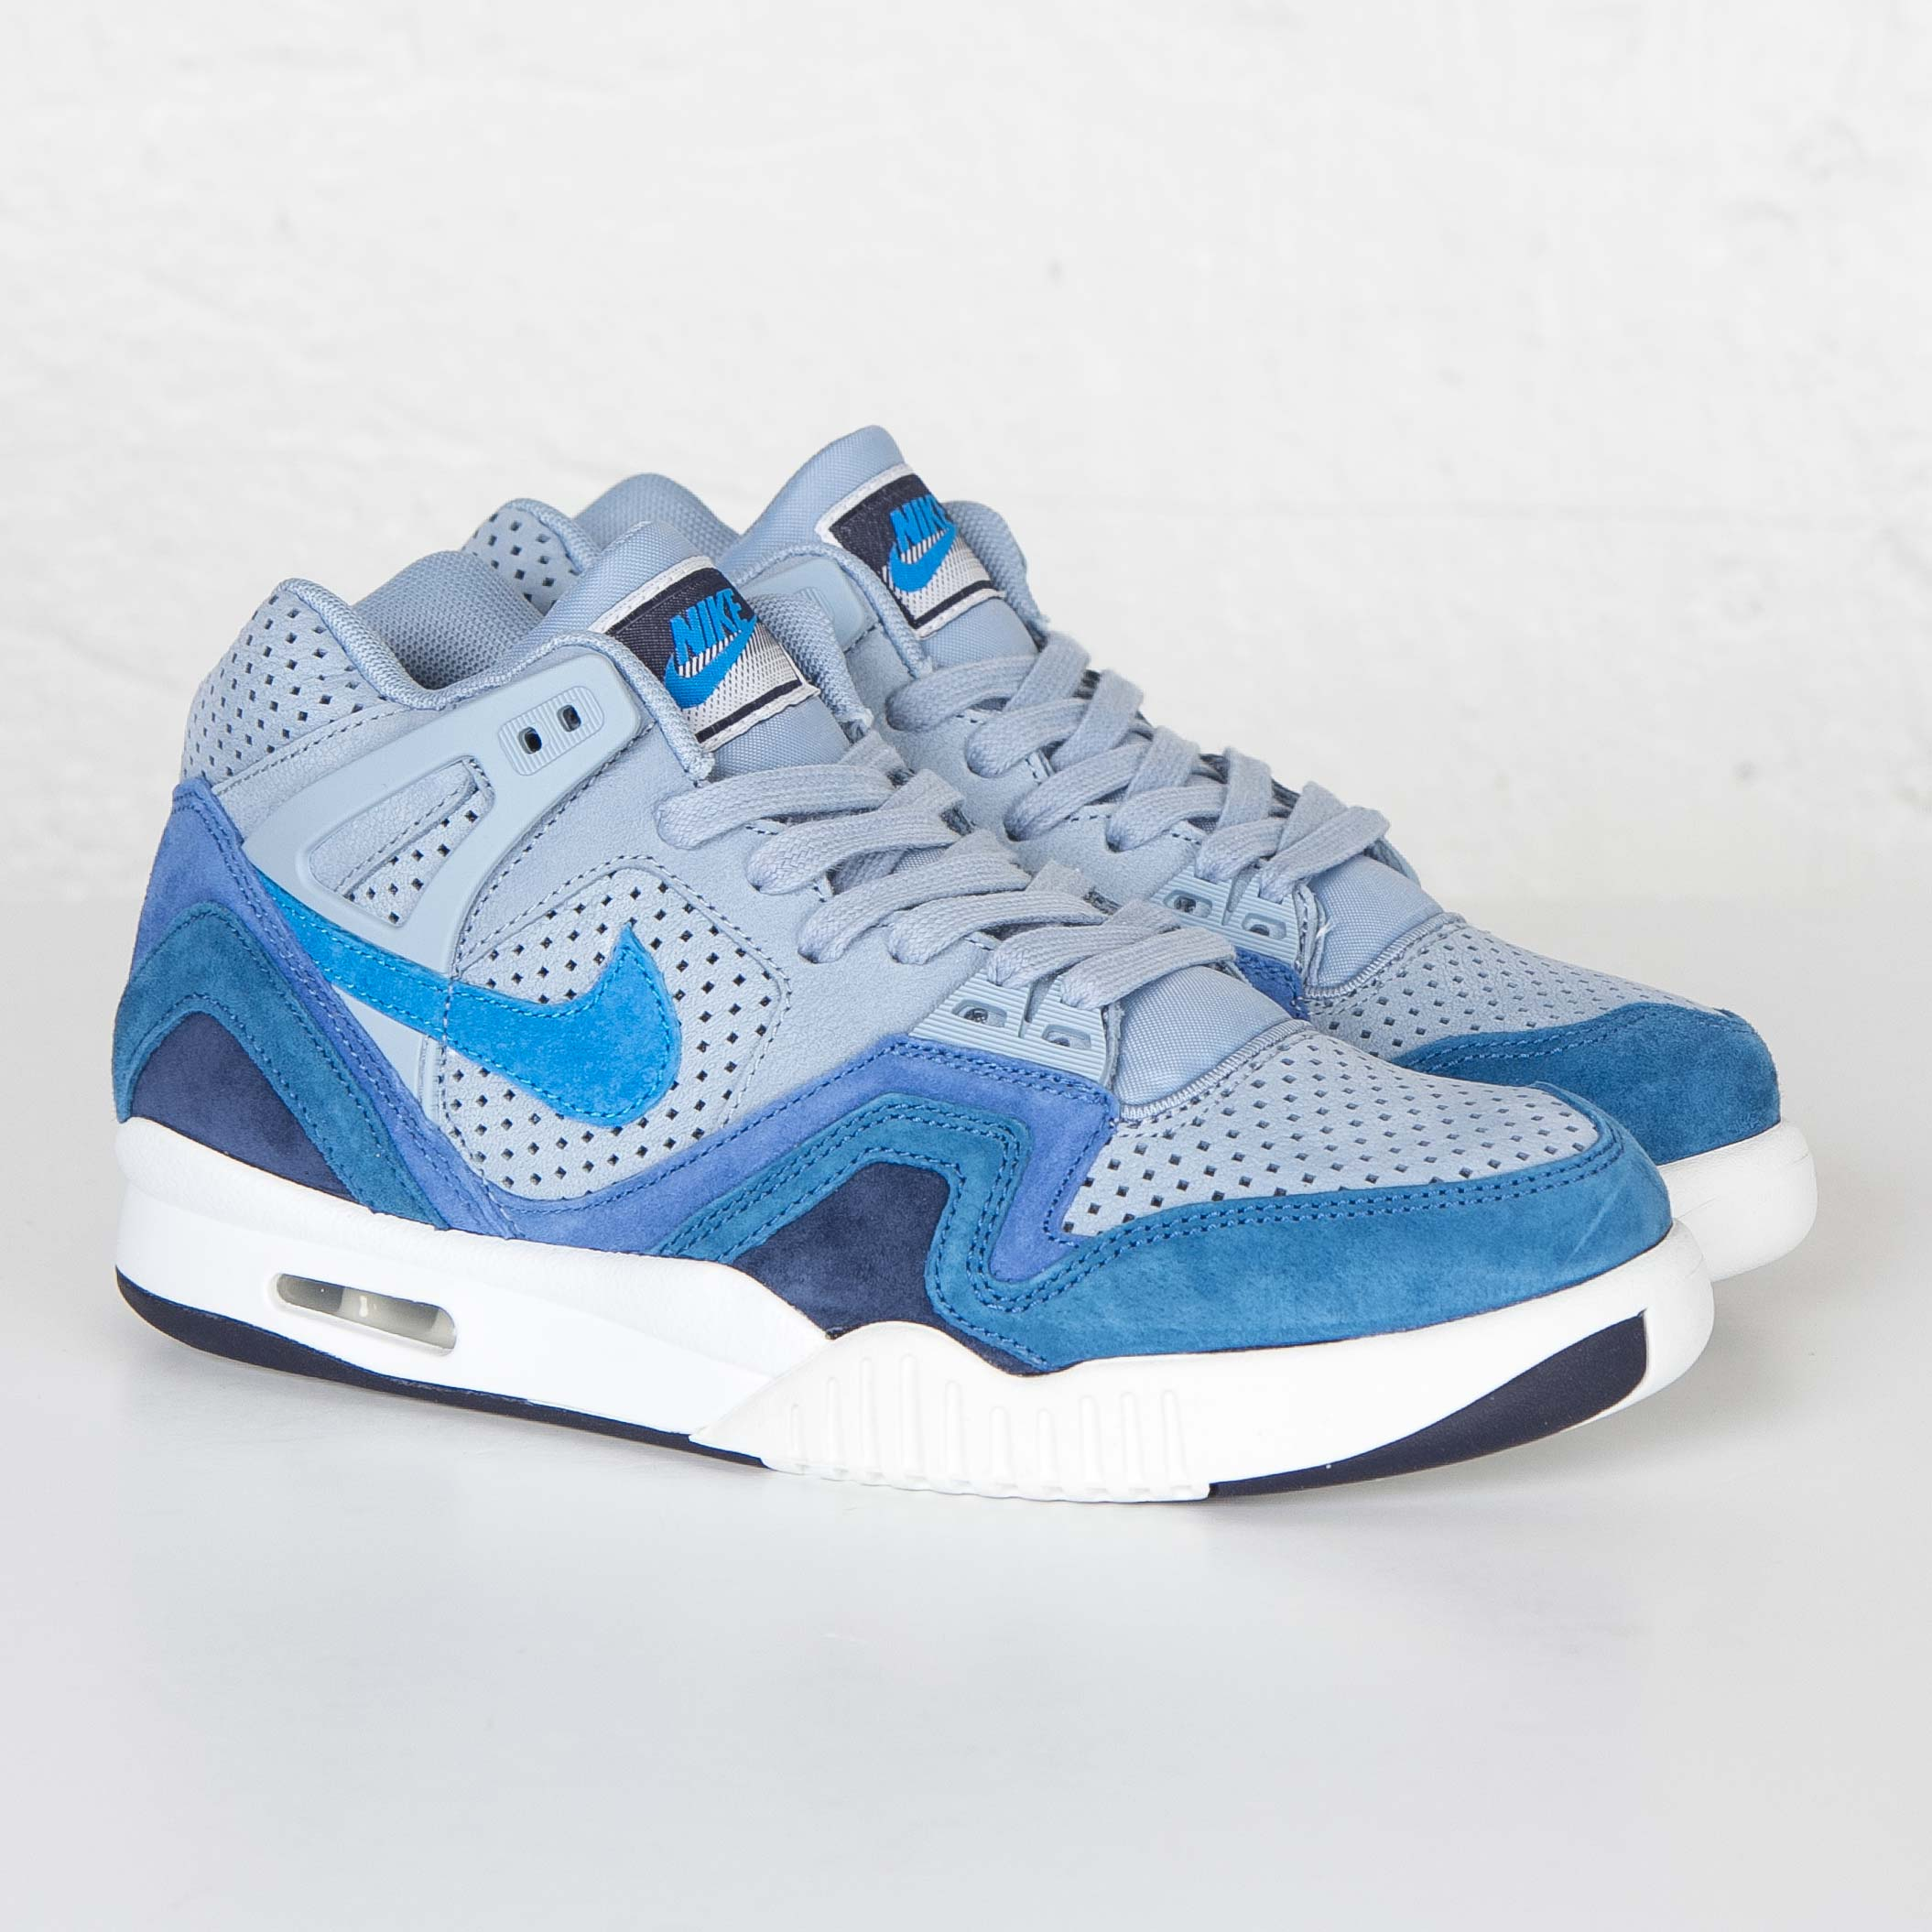 020ccb4a9fb Nike Air Tech Challenge II QS - 667444-404 - Sneakersnstuff ...